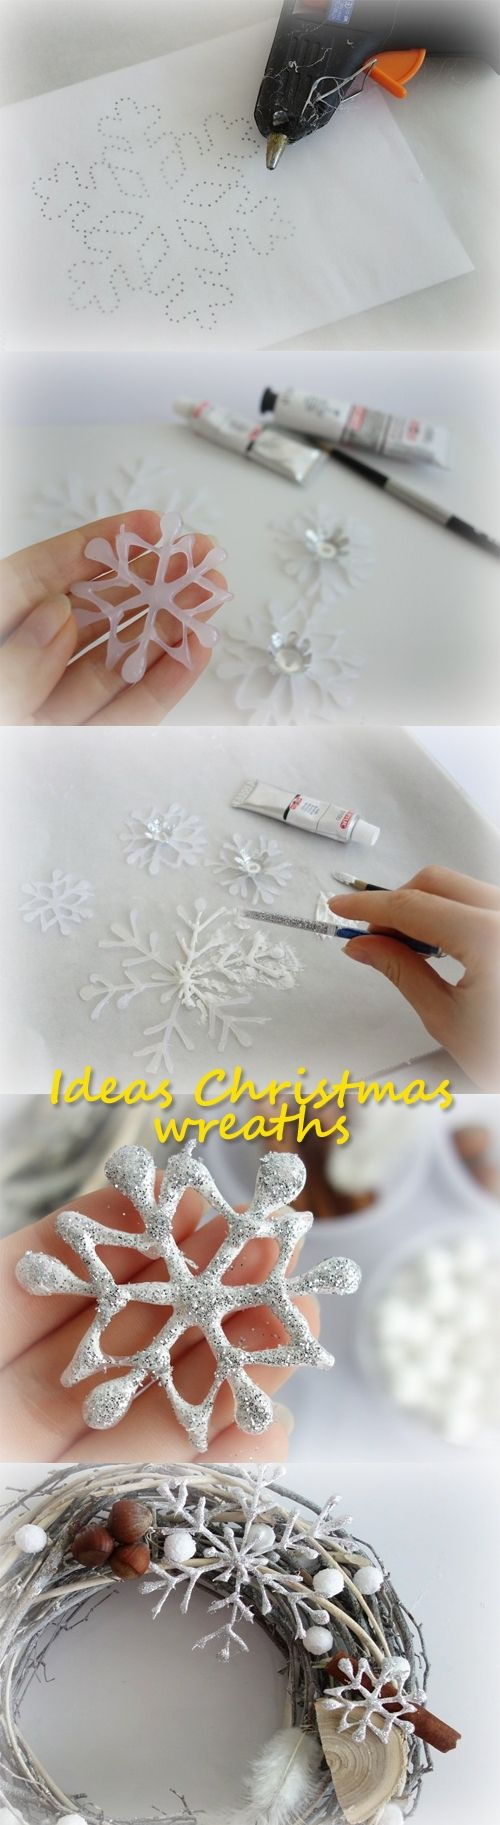 Ideas Christmas wreaths